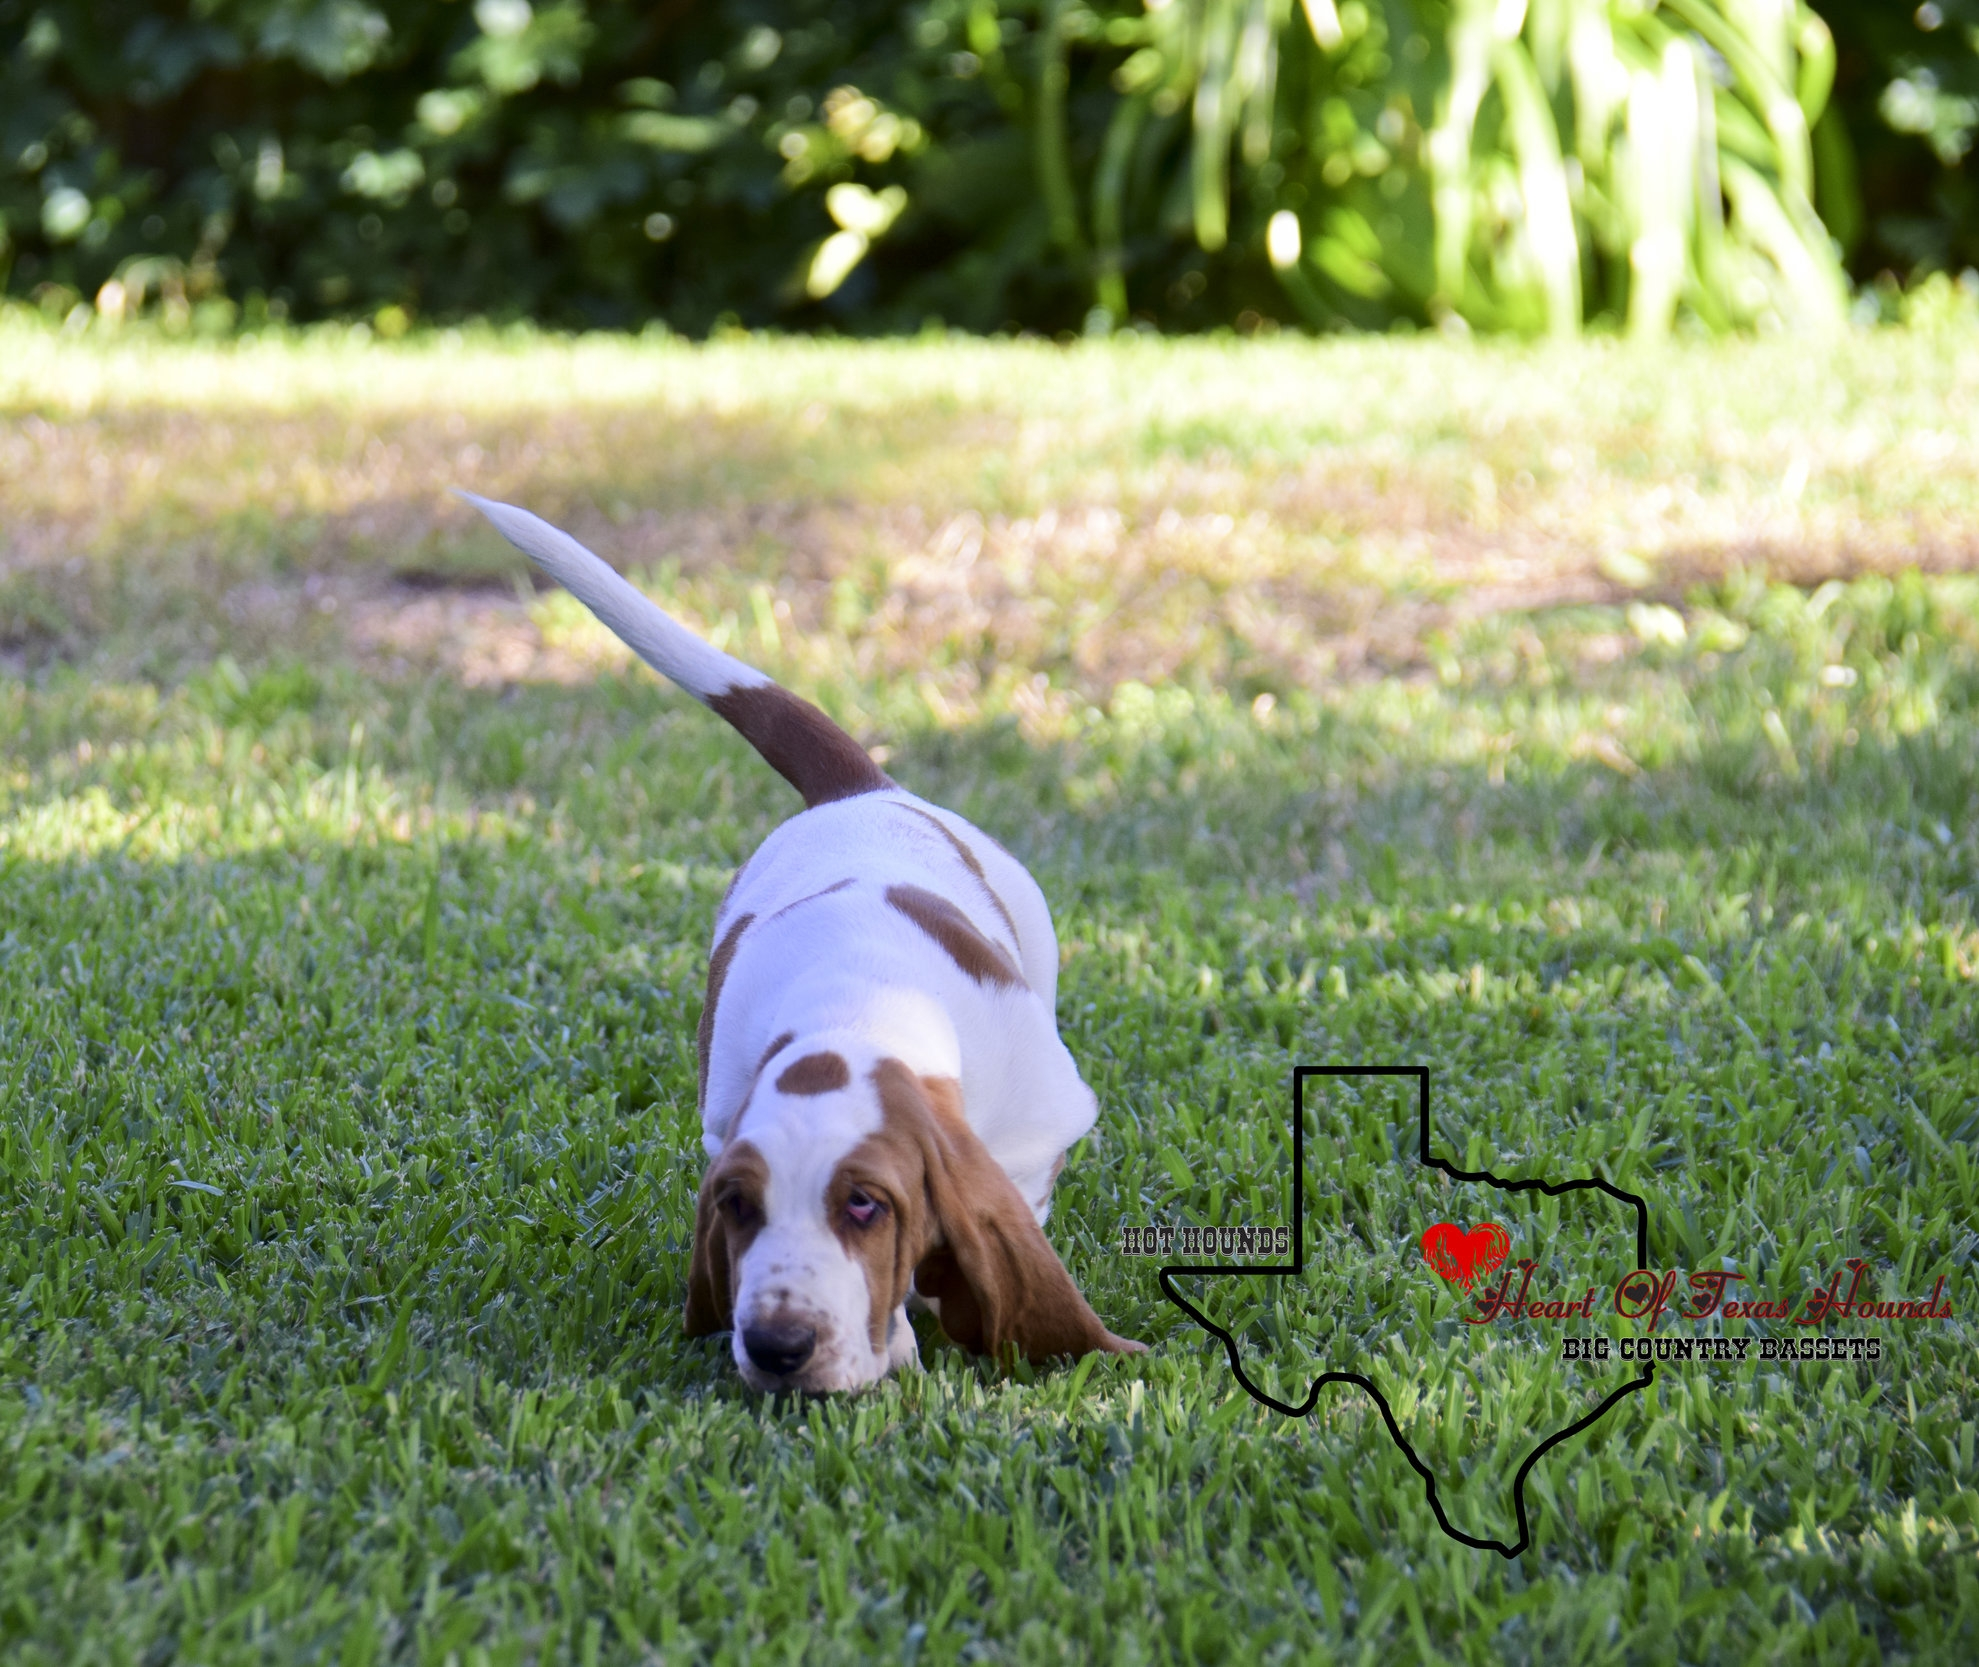 Heart Of Texas Ain't No Sunshine - HEART OF TEXAS AIN'T NO SUNSHINE        ( AKA - SUNNY )FEMALE BORN MARCH 10 2017 MAPLE STREET JAMIMA X MAPLE STREET IS IT LOVE?BORN AND RAISED HERE AT HOT HOUNDSWILL REMAIN FOR FUTURE BREEDING PROSPECT